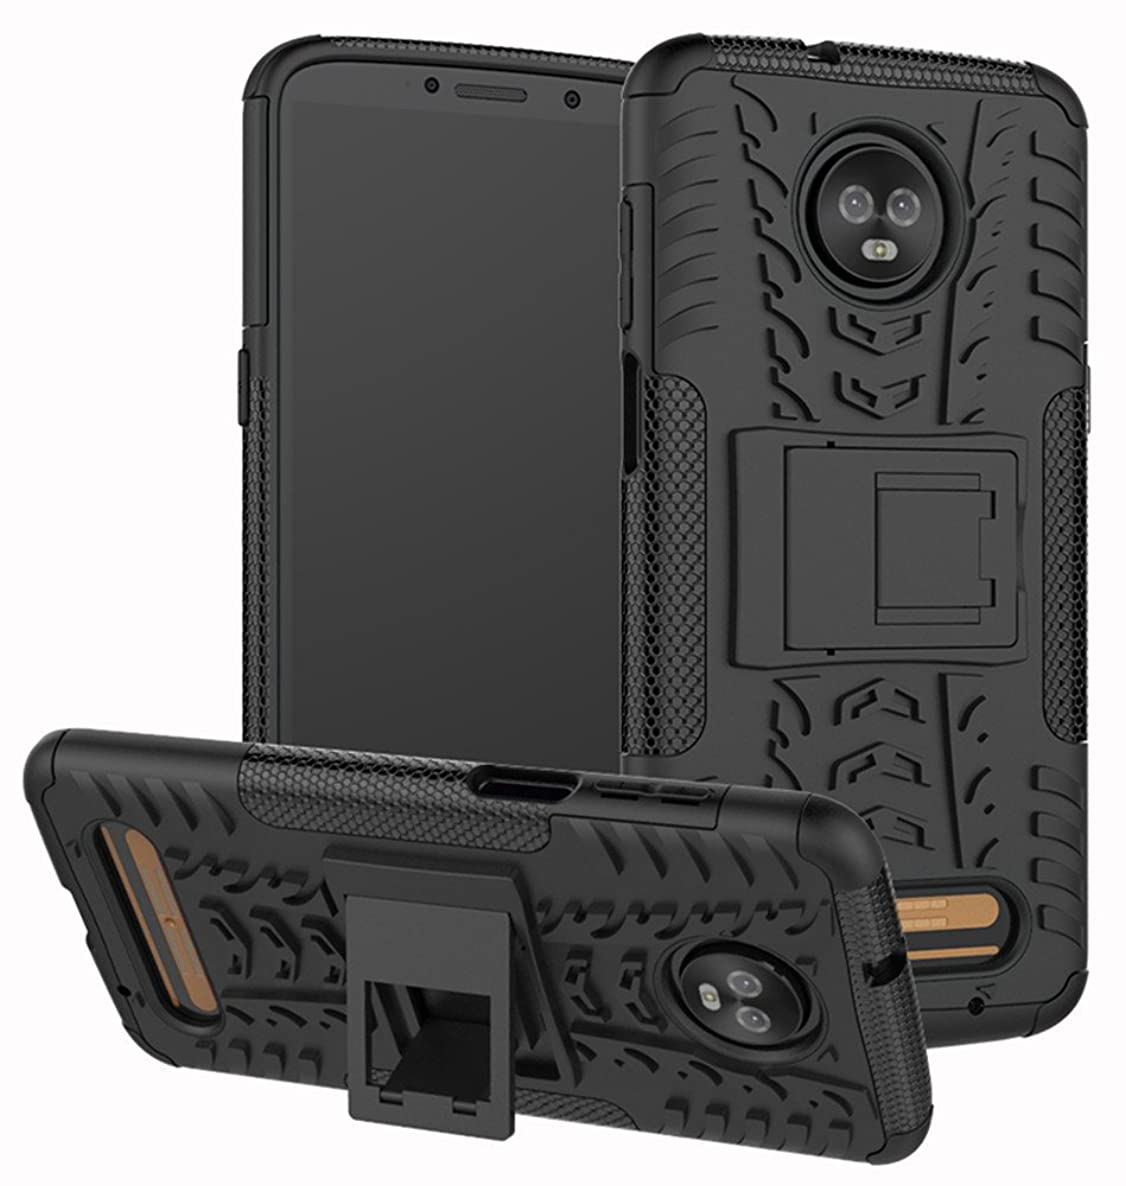 Moto Z3 Case, Moto Z3 Play Case, Yiakeng Dual Layer Shockproof Wallet Slim Protective with Kickstand Hard Phone Case Cover for Motorola Moto Z3 (Black)